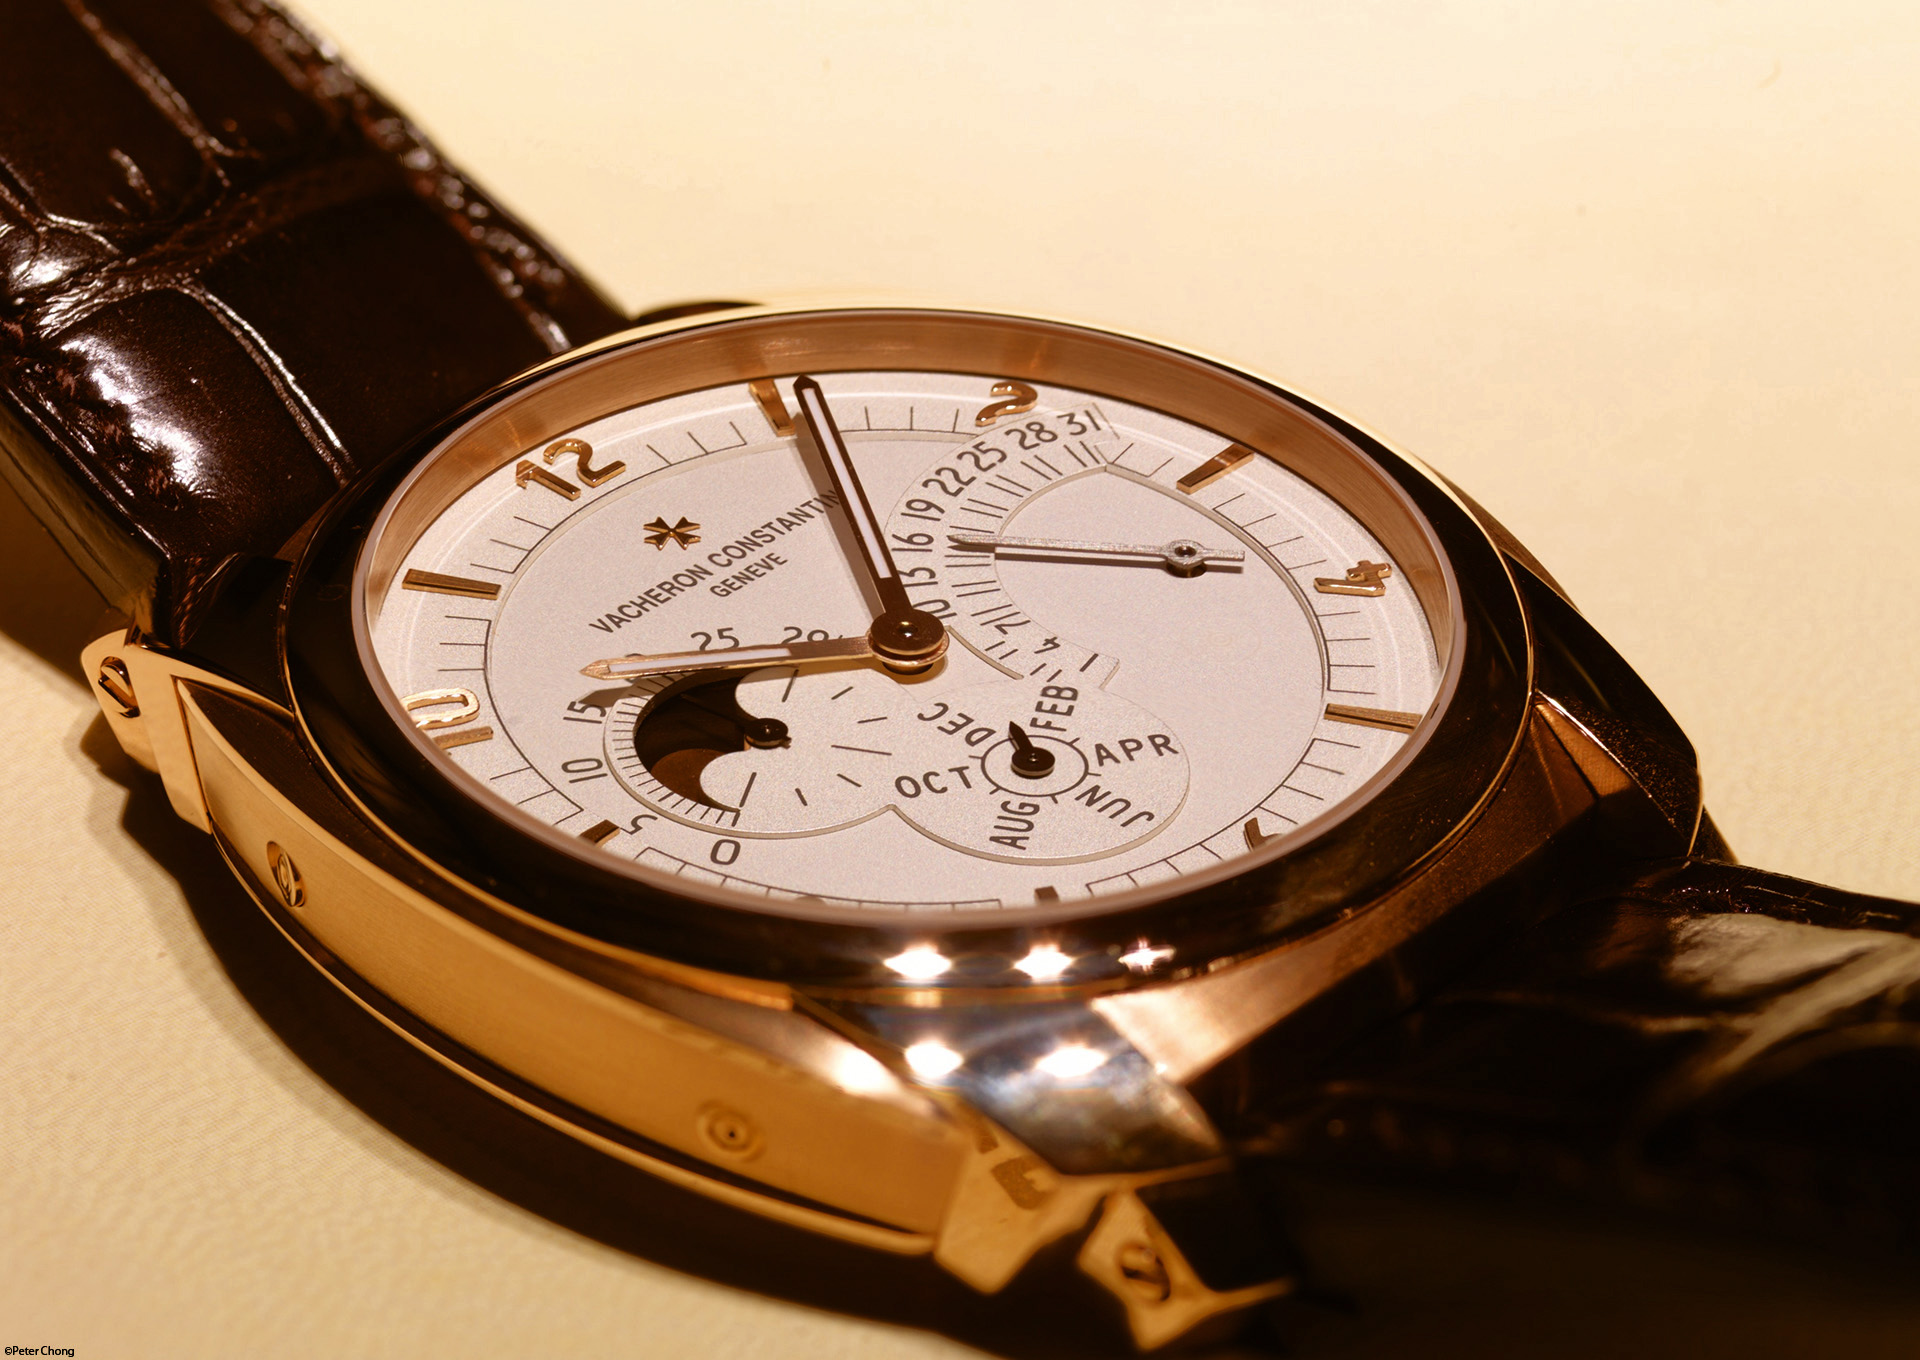 annuel steel introducing the me wn gmt calendar annual blancpain watches villeret quantie